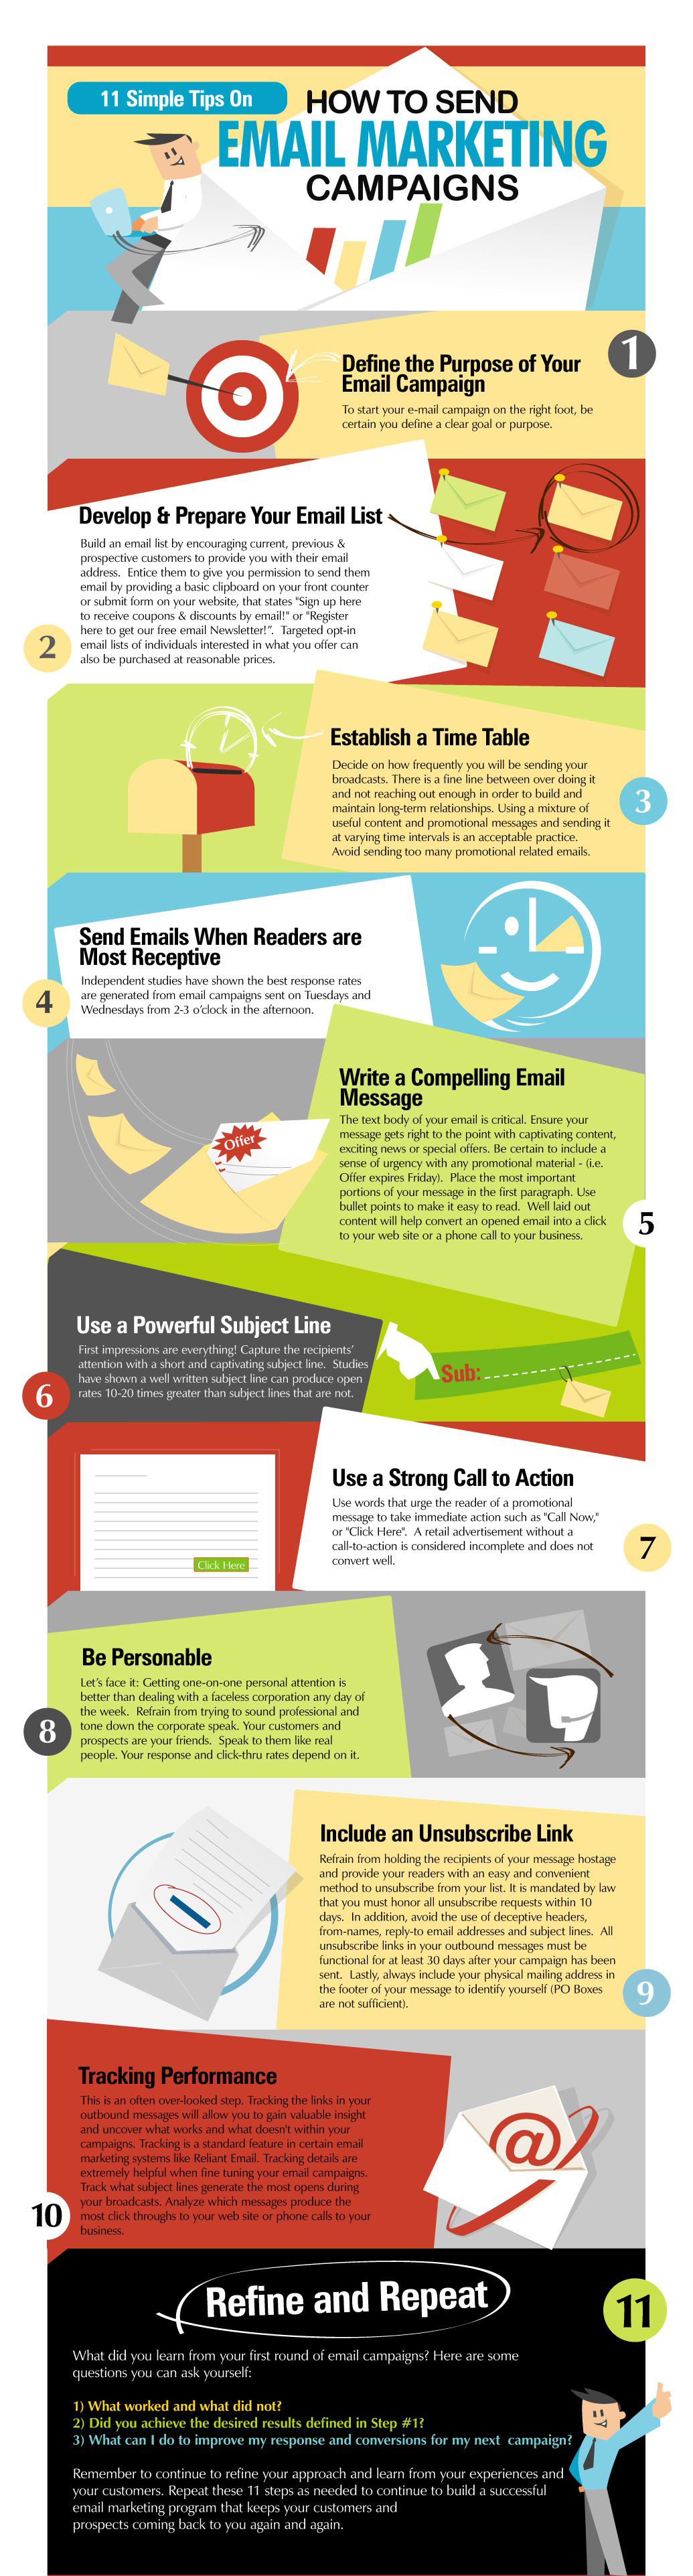 11-simple-tips-on-how-to-send-email-marketing-campaigns